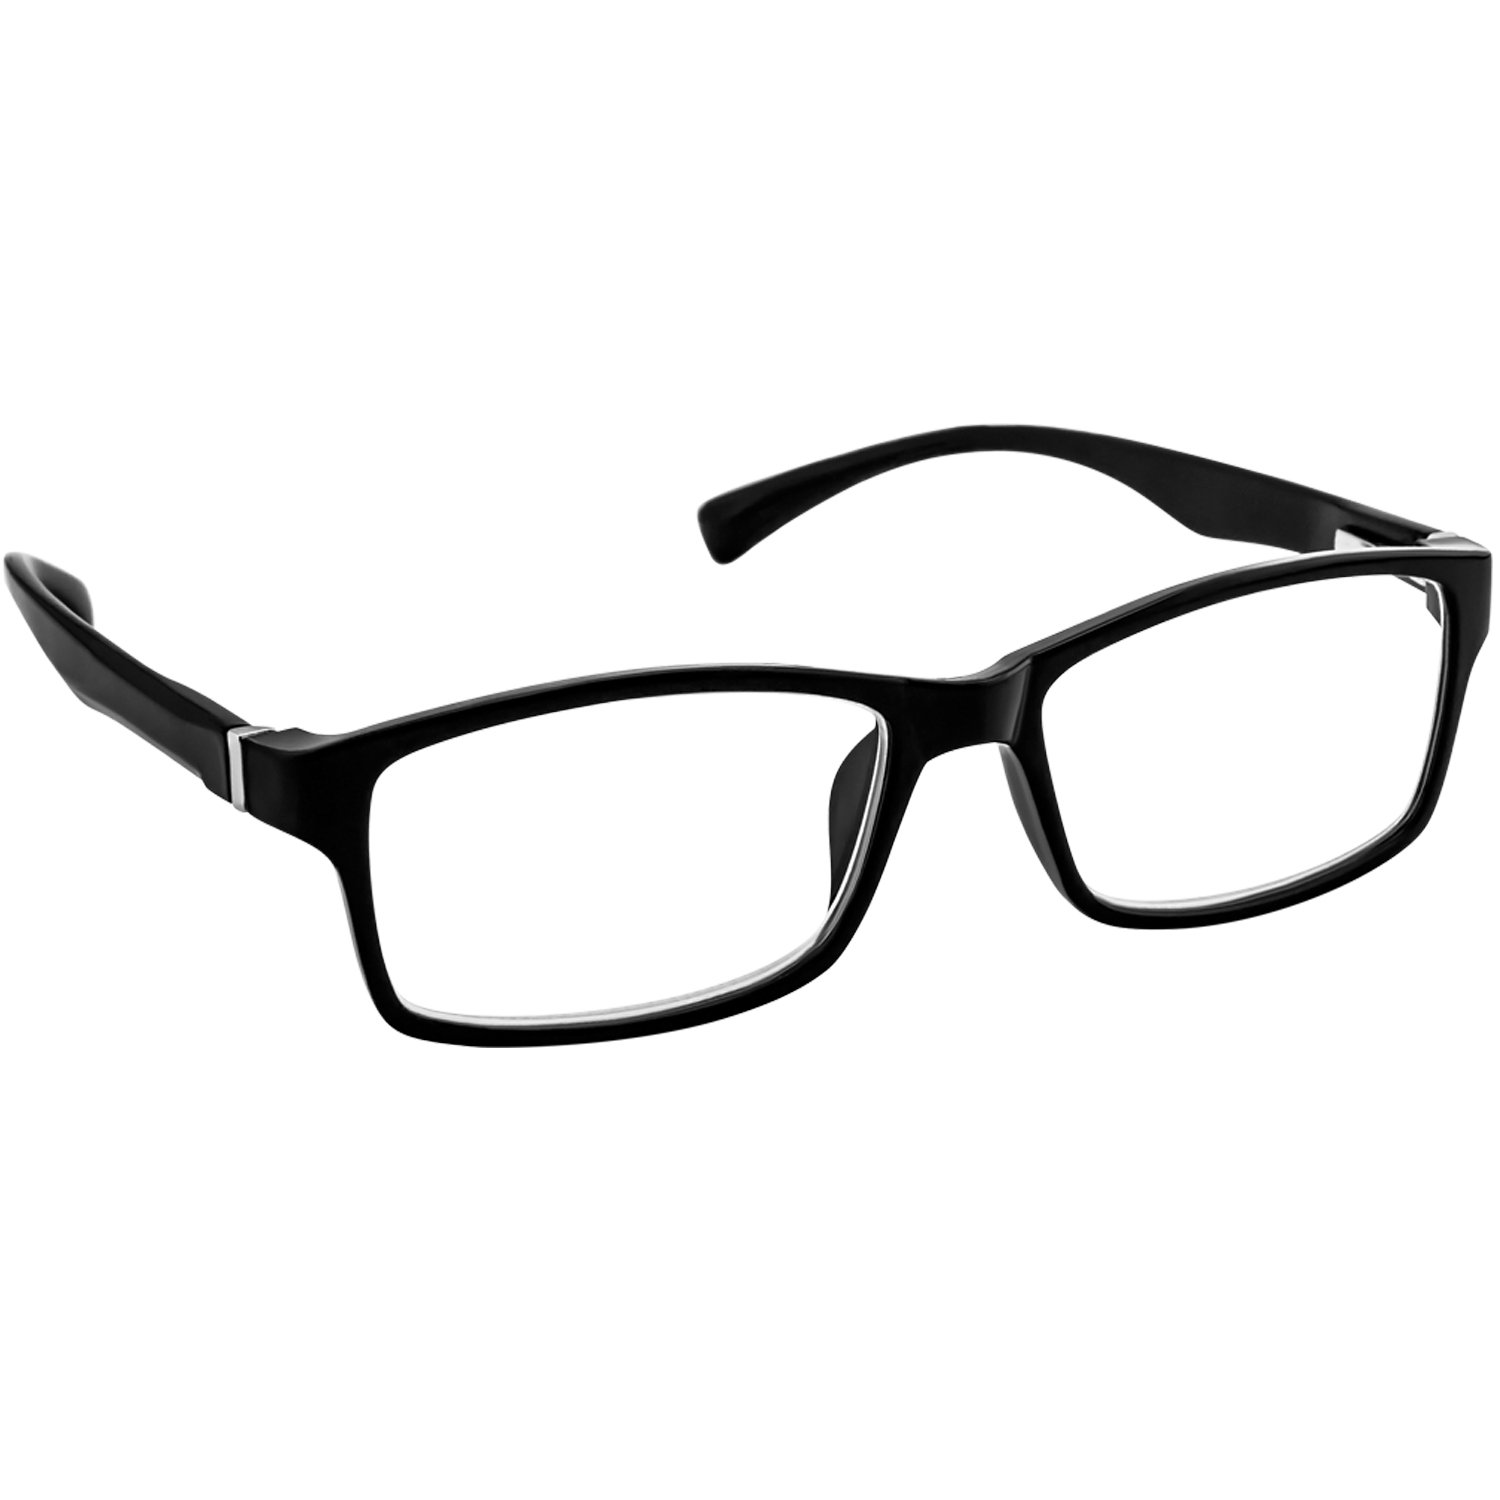 cc6306b194a Black Computer Reading Glasses 1.25 Protect Your Eyes Against Eye Strain